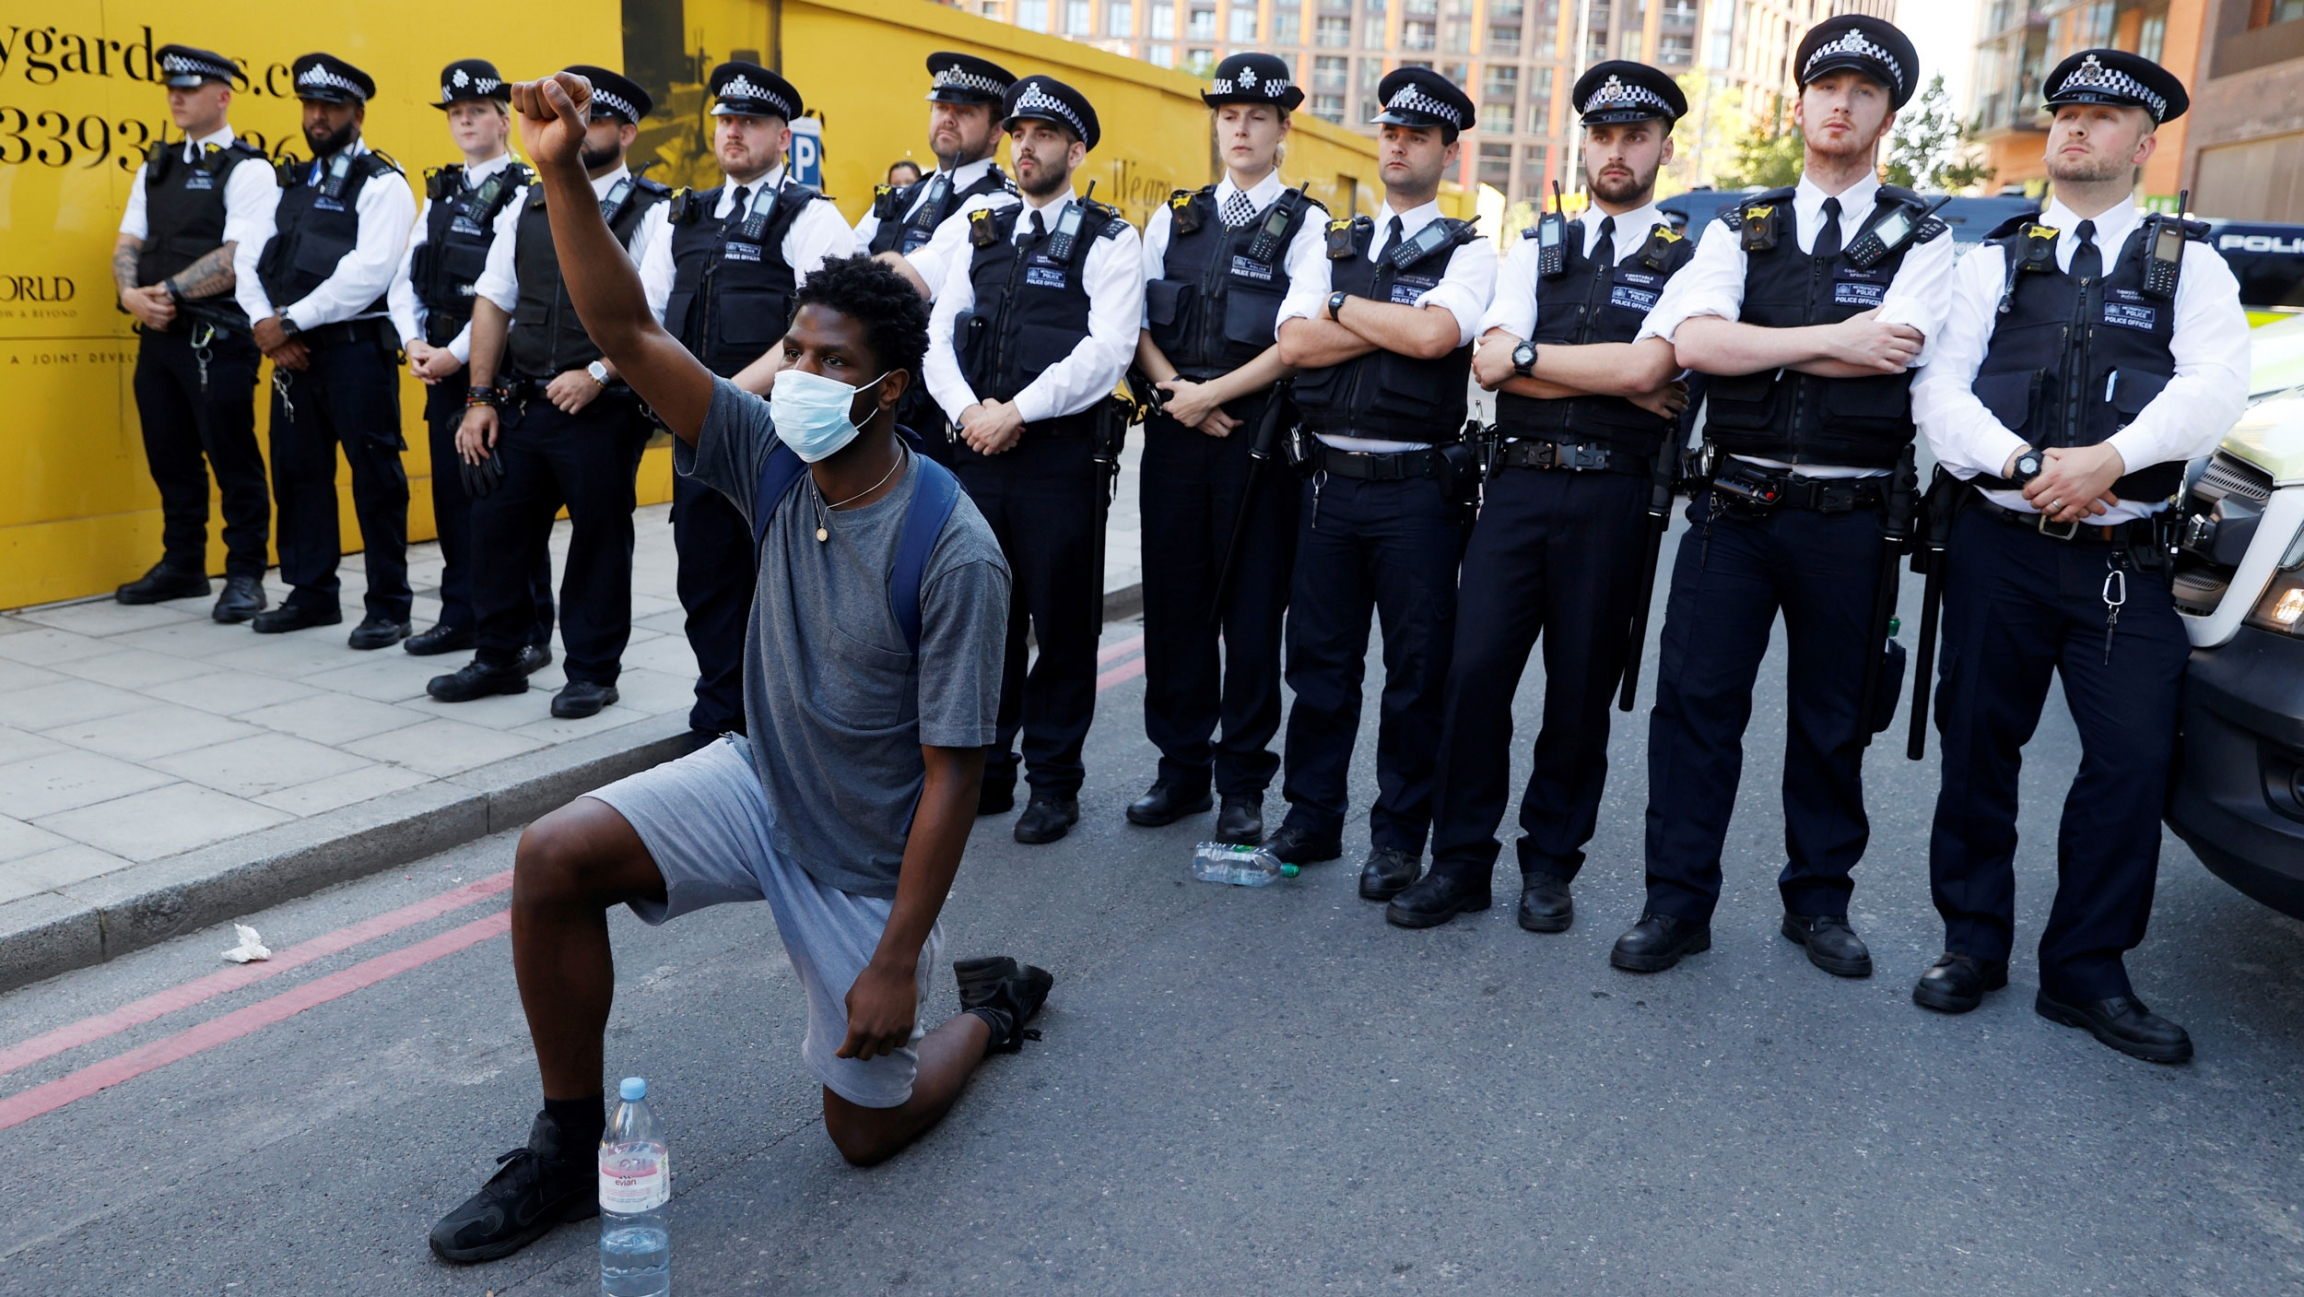 A man is shown kneeling and with his right fist raised with a line of police standing behind him.